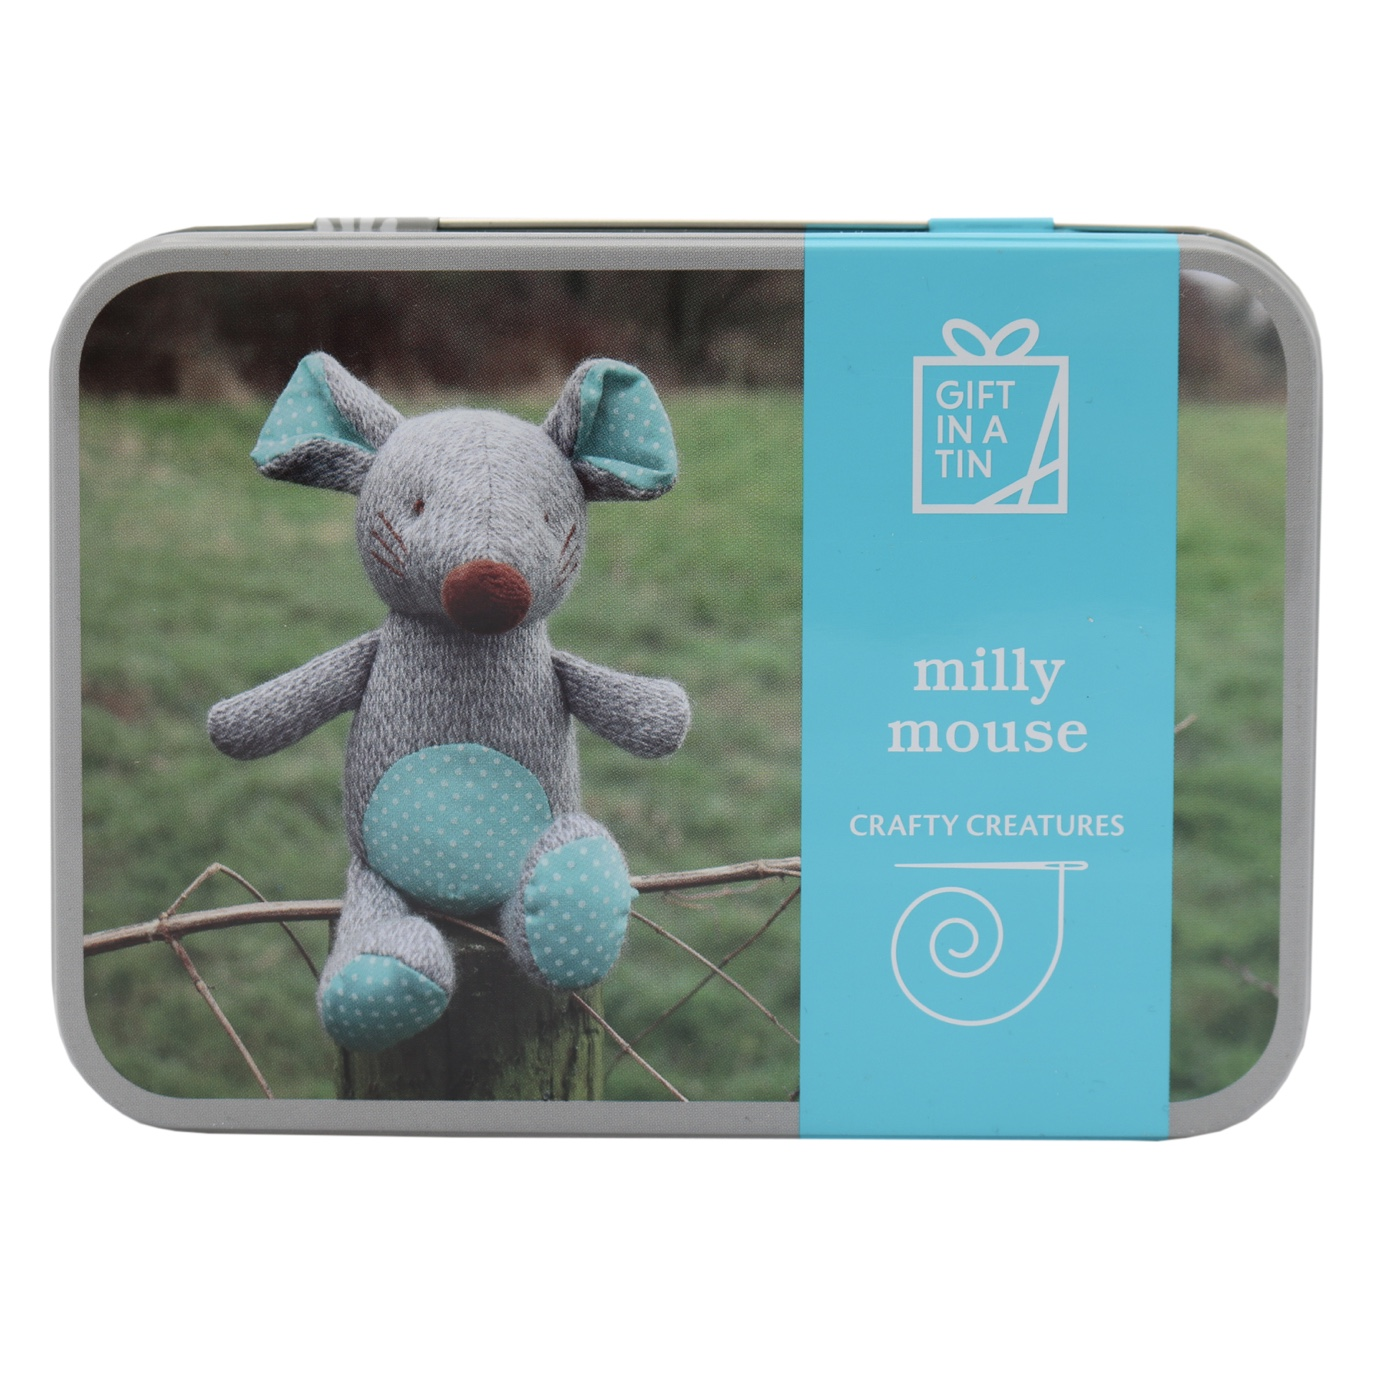 'Milly Mouse' Gift in a Tin